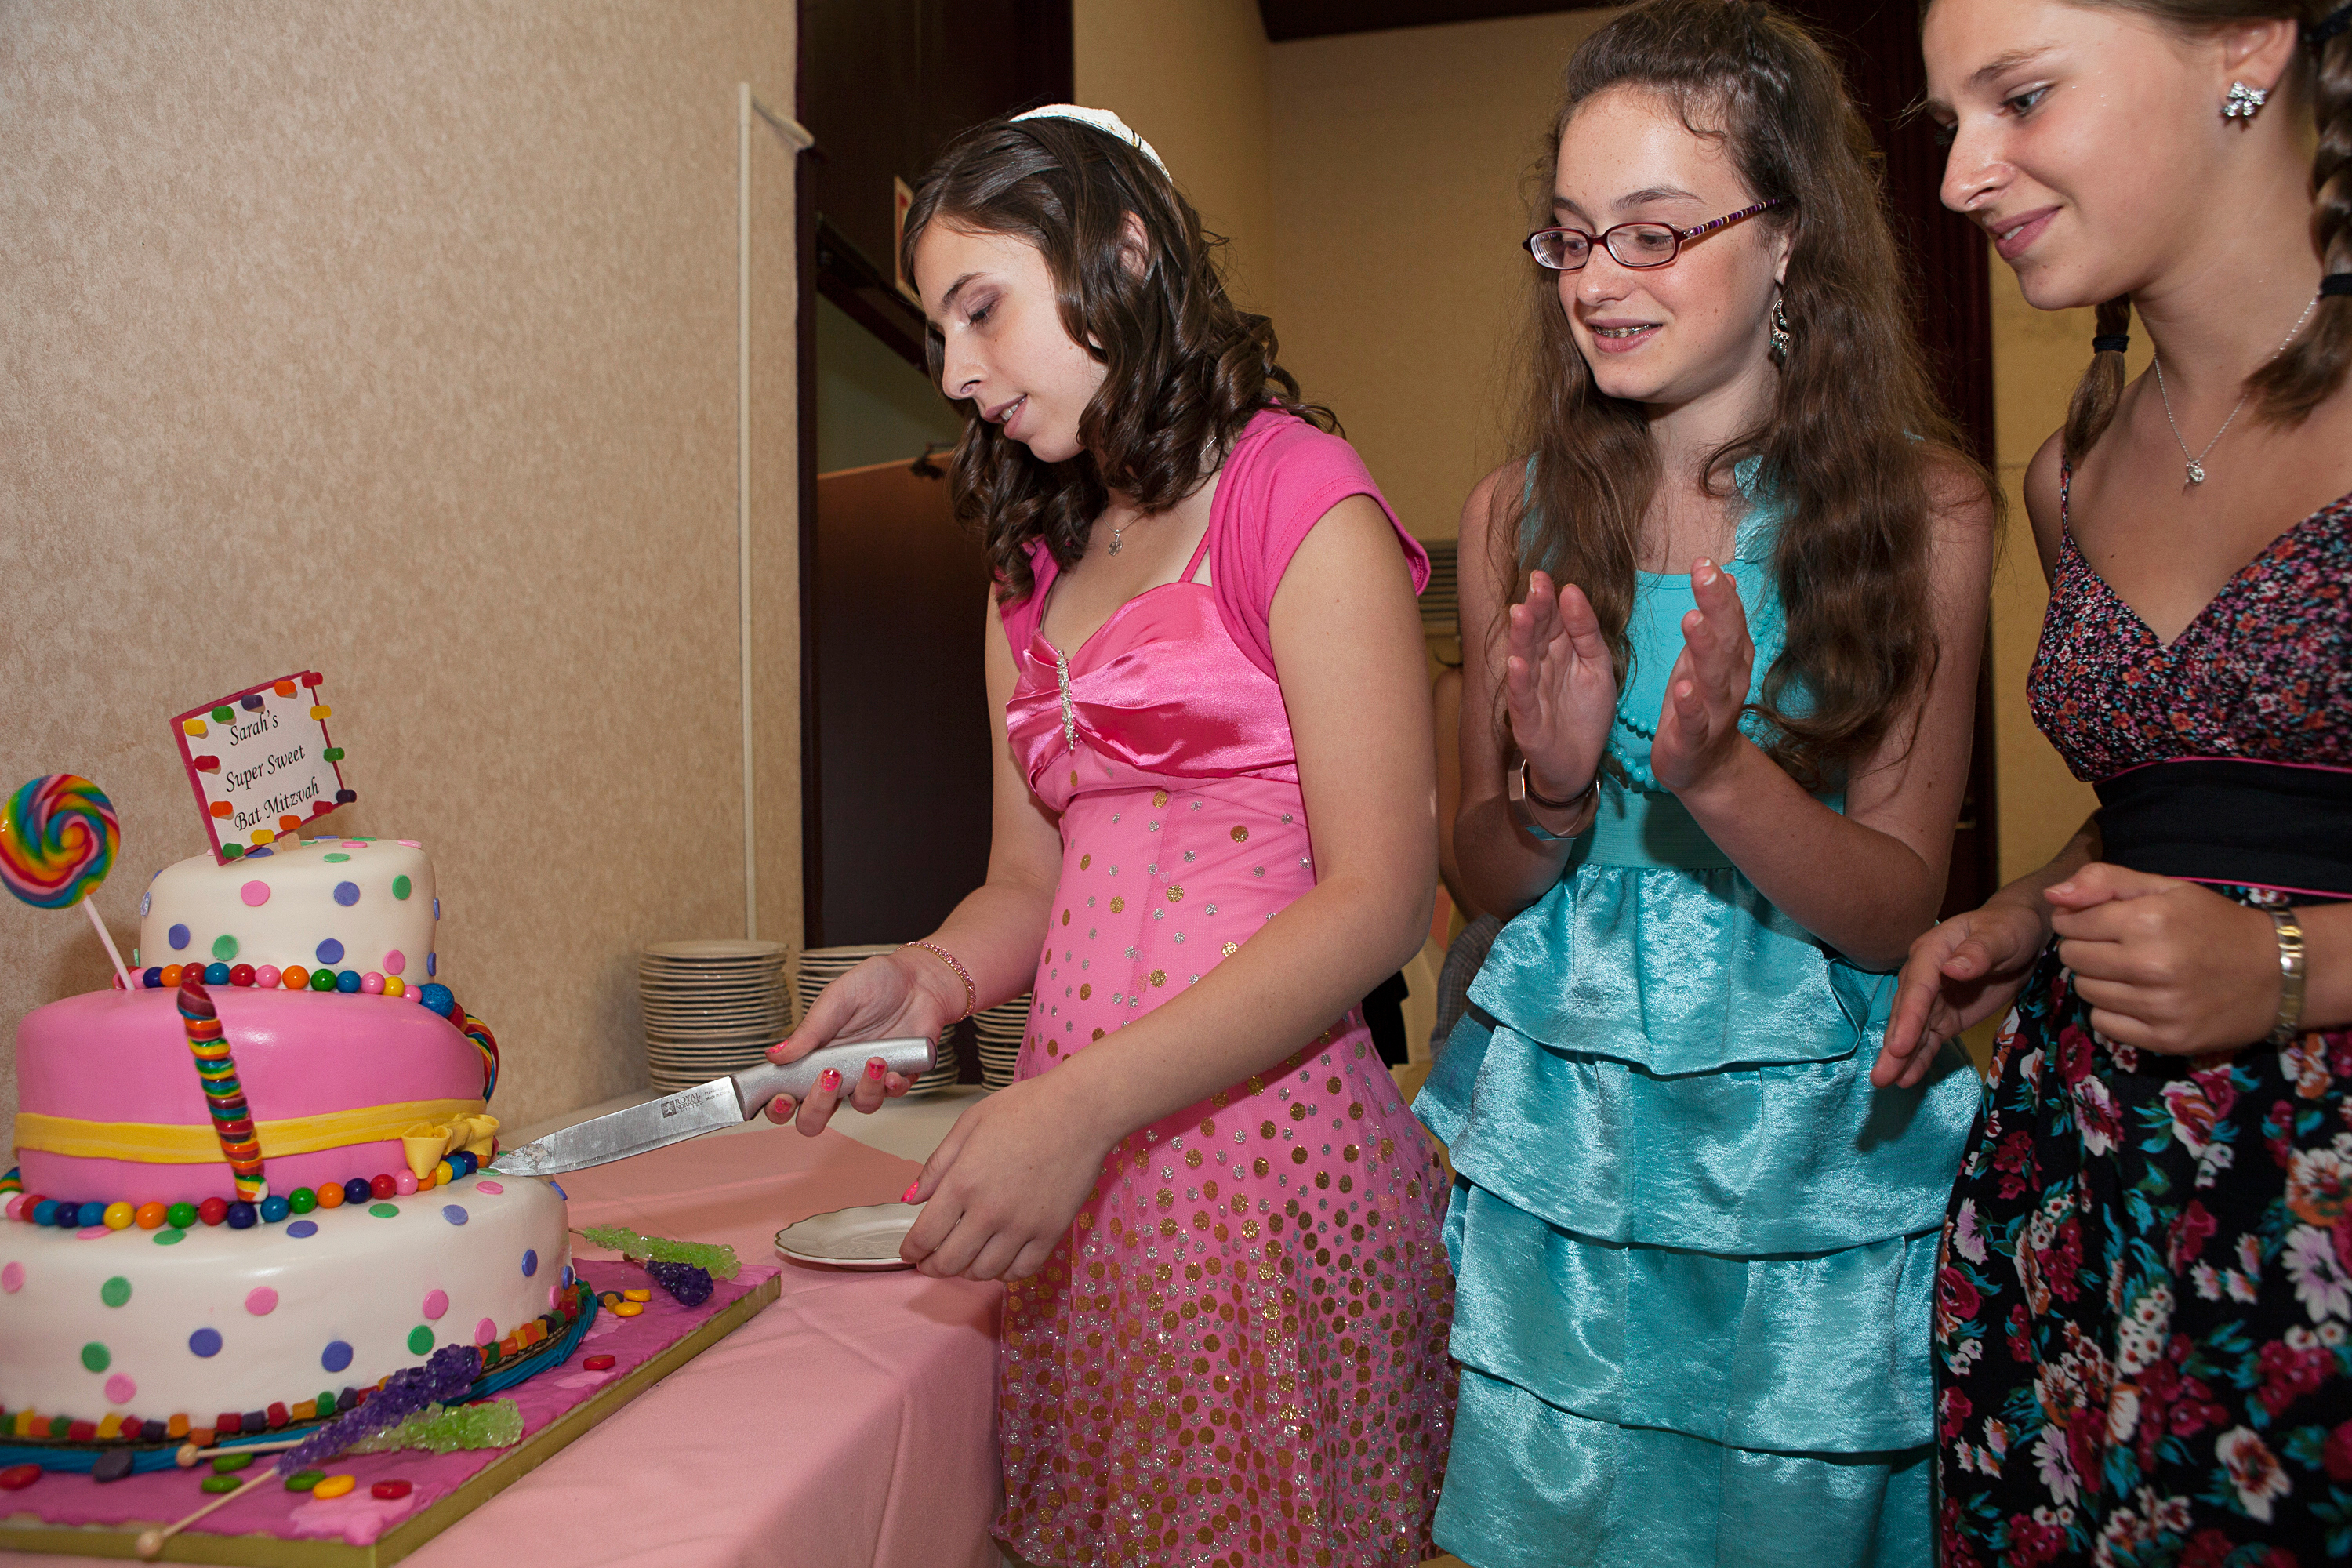 """<strong>According to industry estimates, """"the average bar or bat mitzvah budget runs roughly $15,000 to $30,000,"""" writes <a href=""""http://www.emitz.com/budget"""" title=""""eMitz.com: the Bar Bat Mitzvah Planning, Ideas, Vendor Reviews and Invitations Site"""" target=""""_blank"""">eMitz.com</a>, the Bar and Bat Mitzvah Planning site. """"Many variables come into play, such as: time of year, time of day, number of guests and the region.  Manhattan and LA are the priciest.""""</strong>                                                                              Title: """"Sarah's Bat Mitzvah, Buffalo, NY,"""" from the series <a href=""""http://www.rebeccagreenfield.com/#a=0&amp;at=0&amp;mi=2&amp;pt=1&amp;pi=10000&amp;s=0&amp;p=4"""" title=""""Coming of Age"""" target=""""_blank""""><em>Coming of Age.</em></a>                                                                              <a href=""""http://www.rebeccagreenfield.com/"""" title=""""Rebecca Greenfield"""" target=""""_blank"""">Rebecca Greenfield</a> has been documenting contemporary American female rites of passage for the past six years, photographing coming of age traditions such as Quinceañeras, Bat Mitzvahs, Debutante Balls, Prom, Homecoming, Sweet Sixteen, Purity Balls, Sorority Rush, Apache Sunrise Dances and more. She looks forward to publishing the project in book form when complete."""